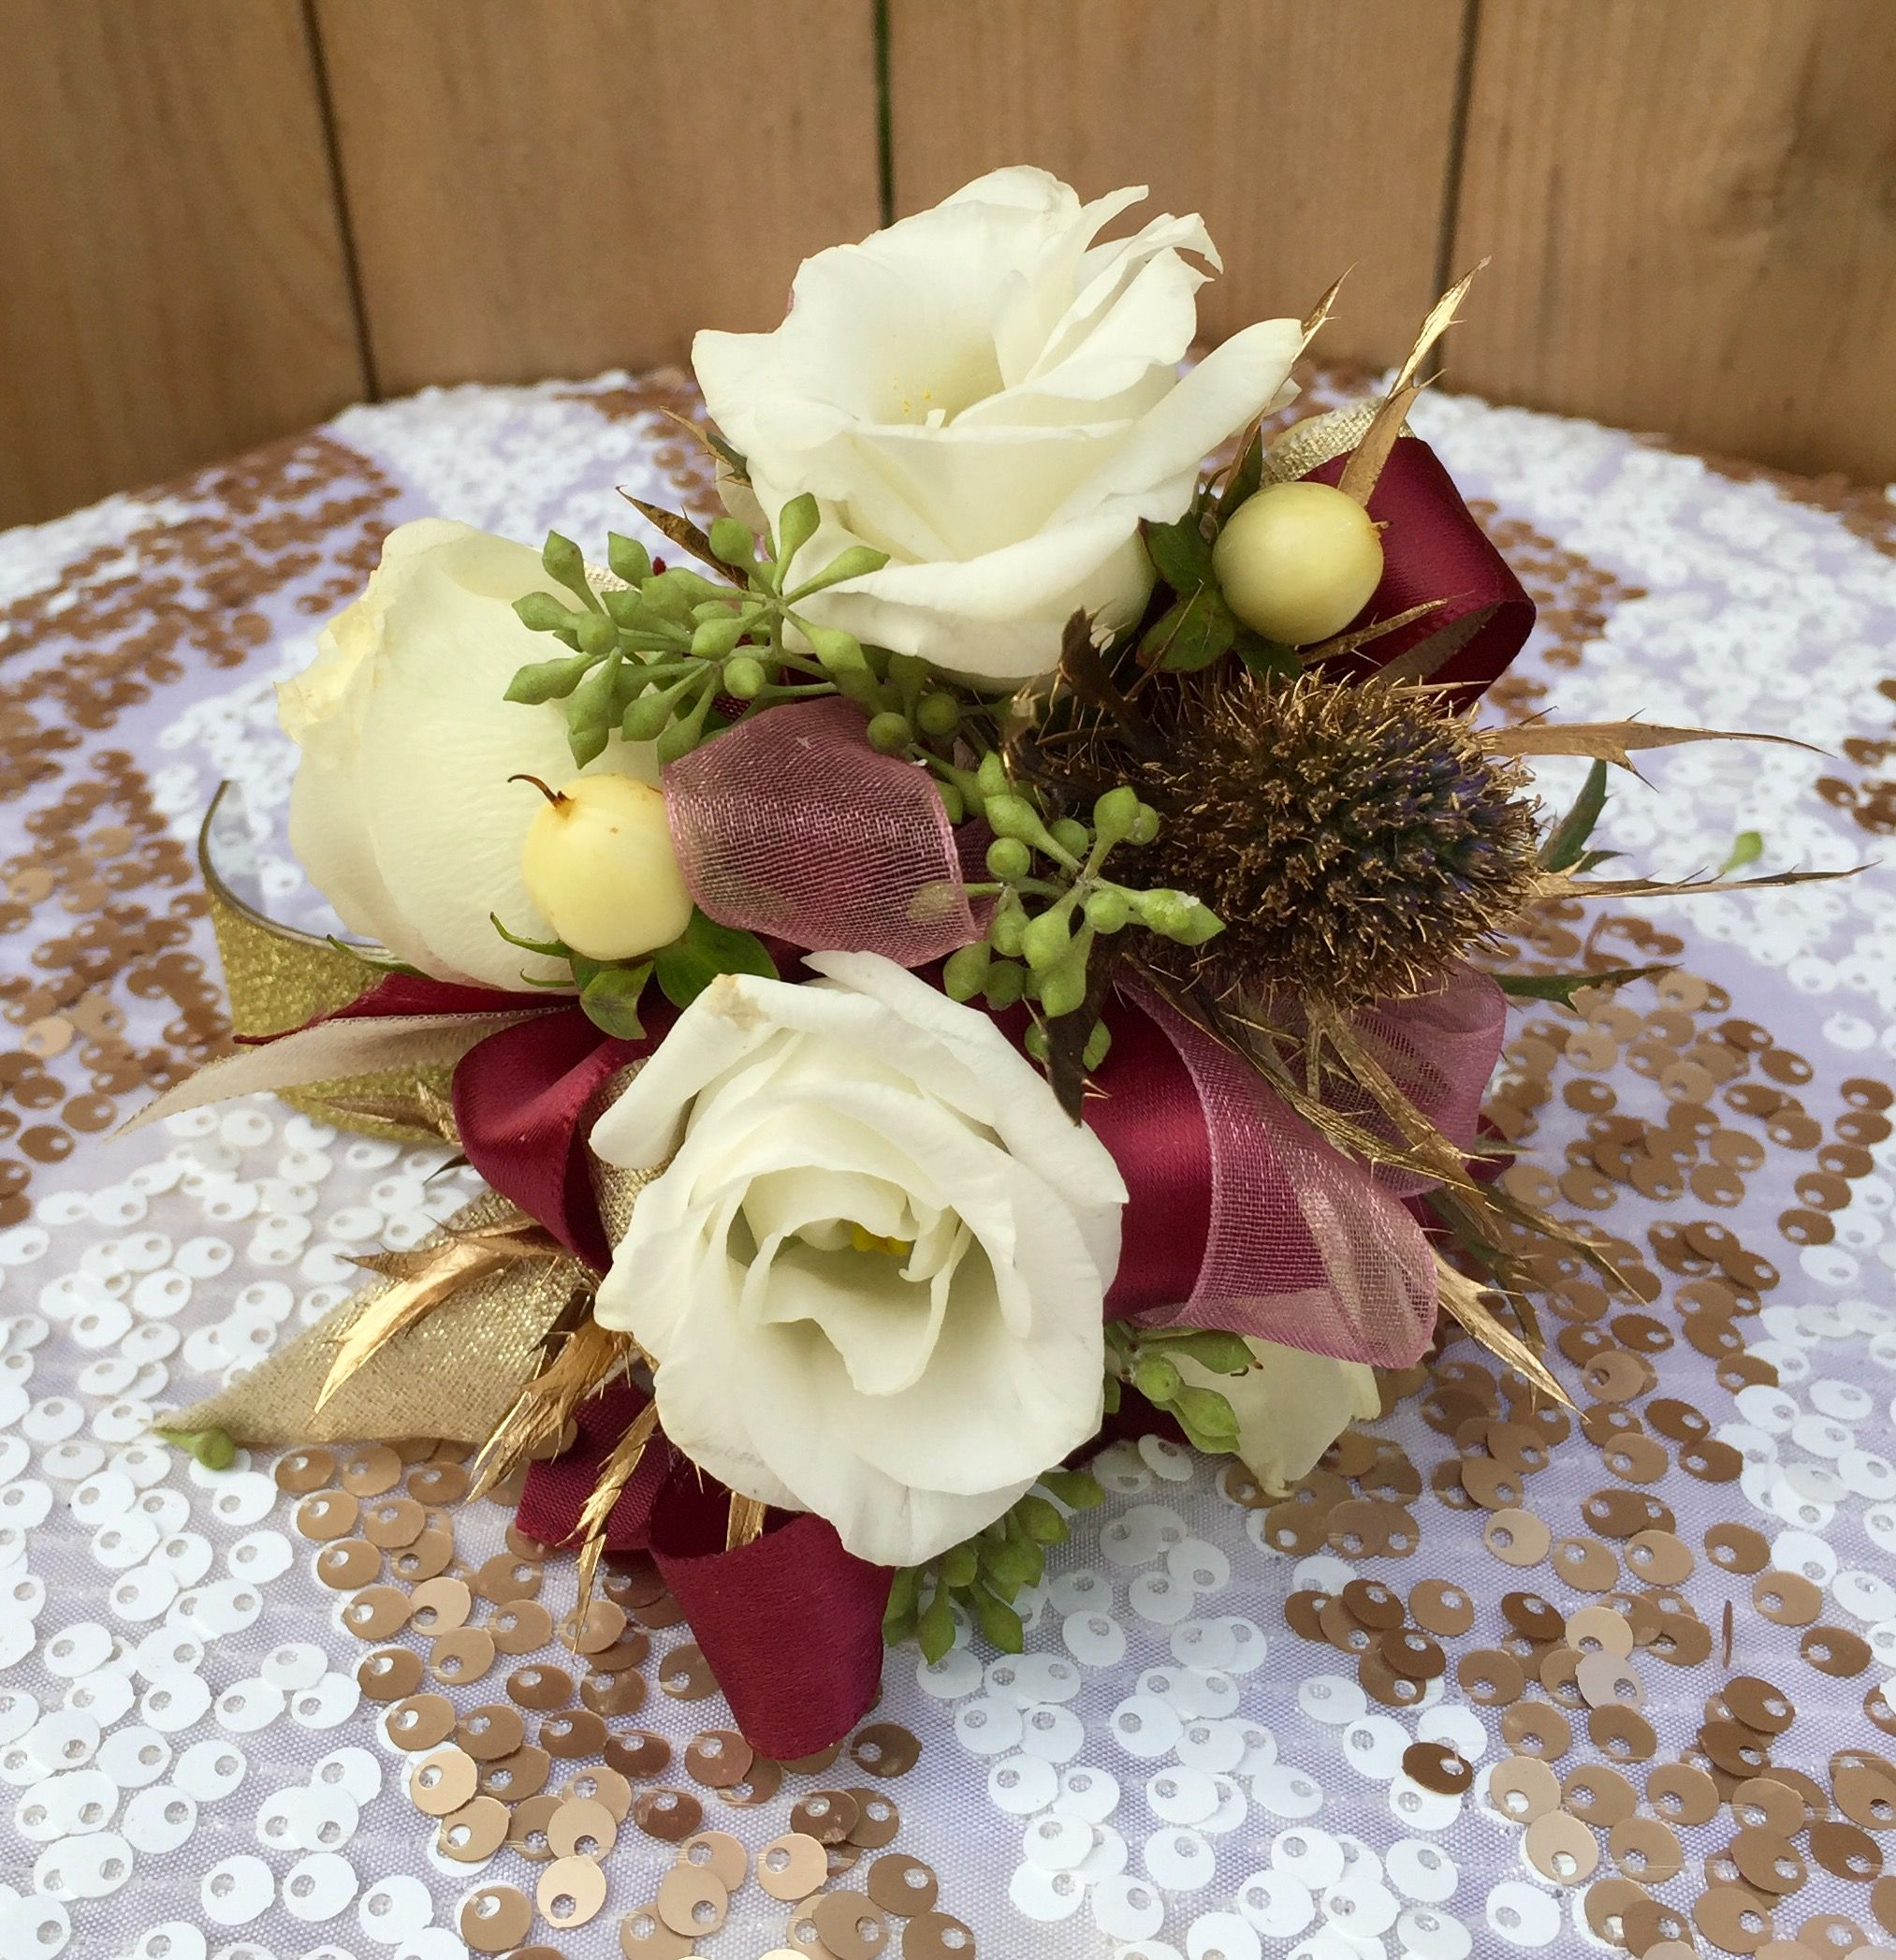 Wedding Flowers By Annette: White Gold And Burgundy Prom Flowers, Prom Corsage, Prom